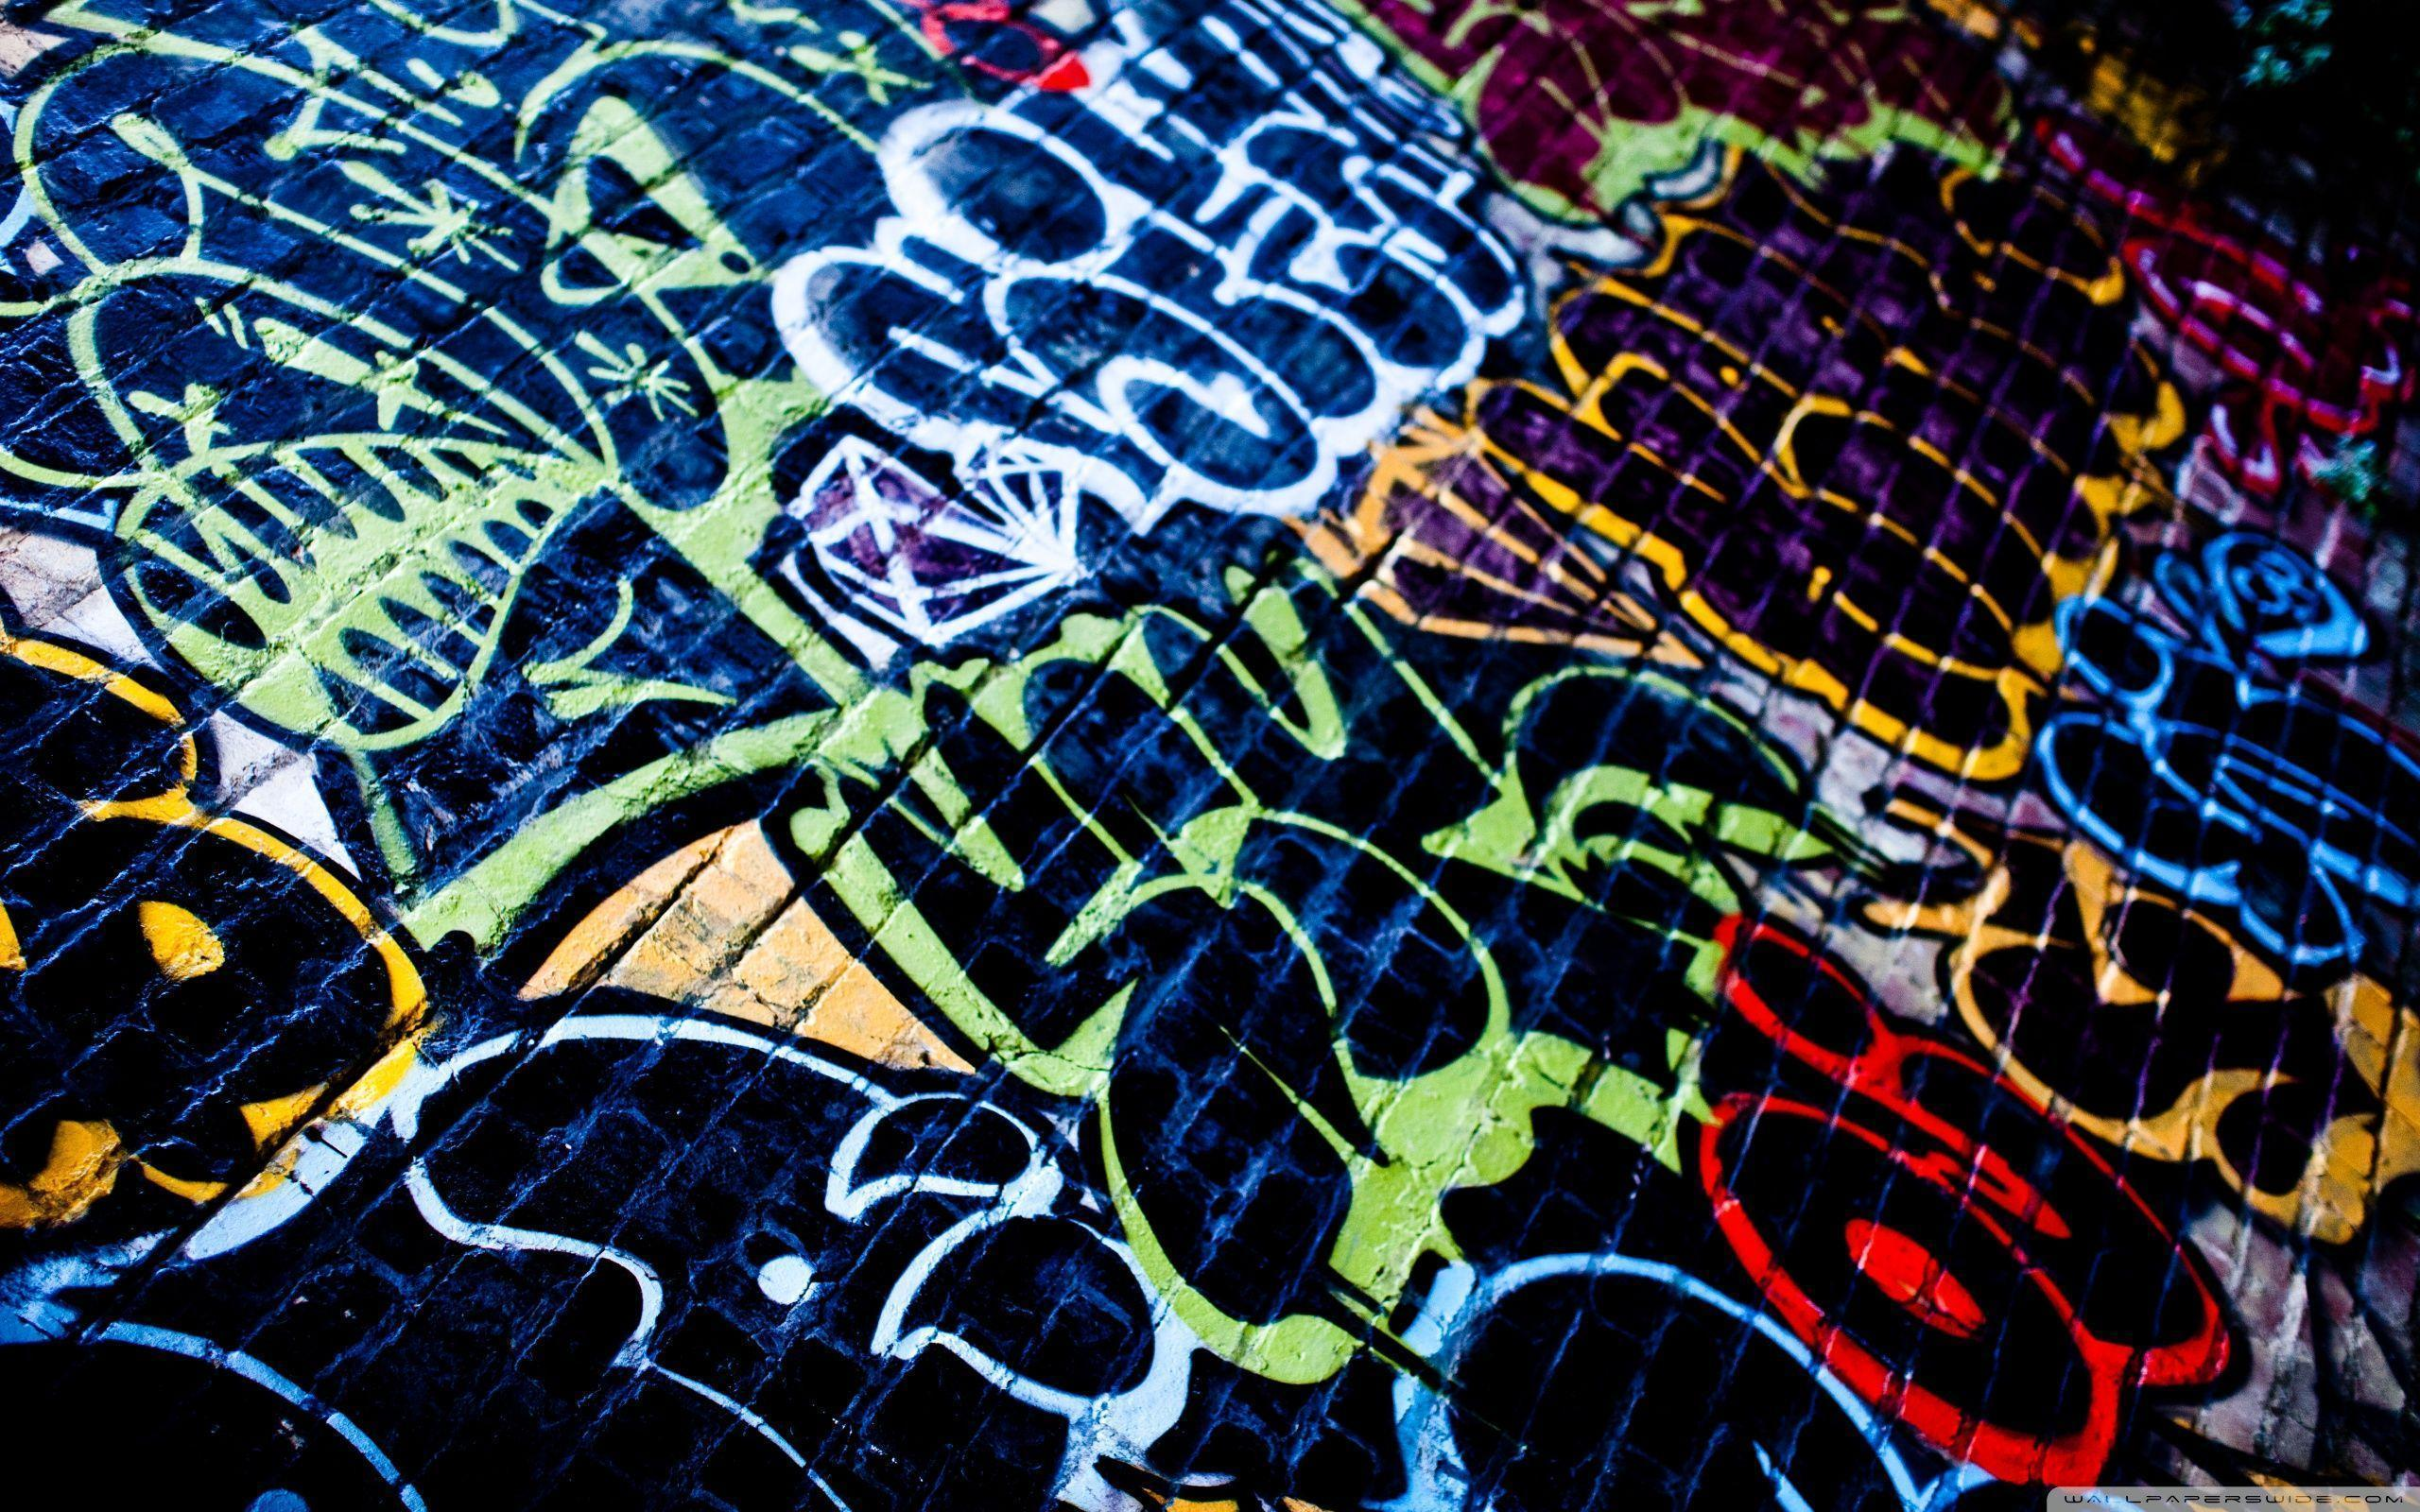 Graffiti Wallpaper For Girls - wallpaper.